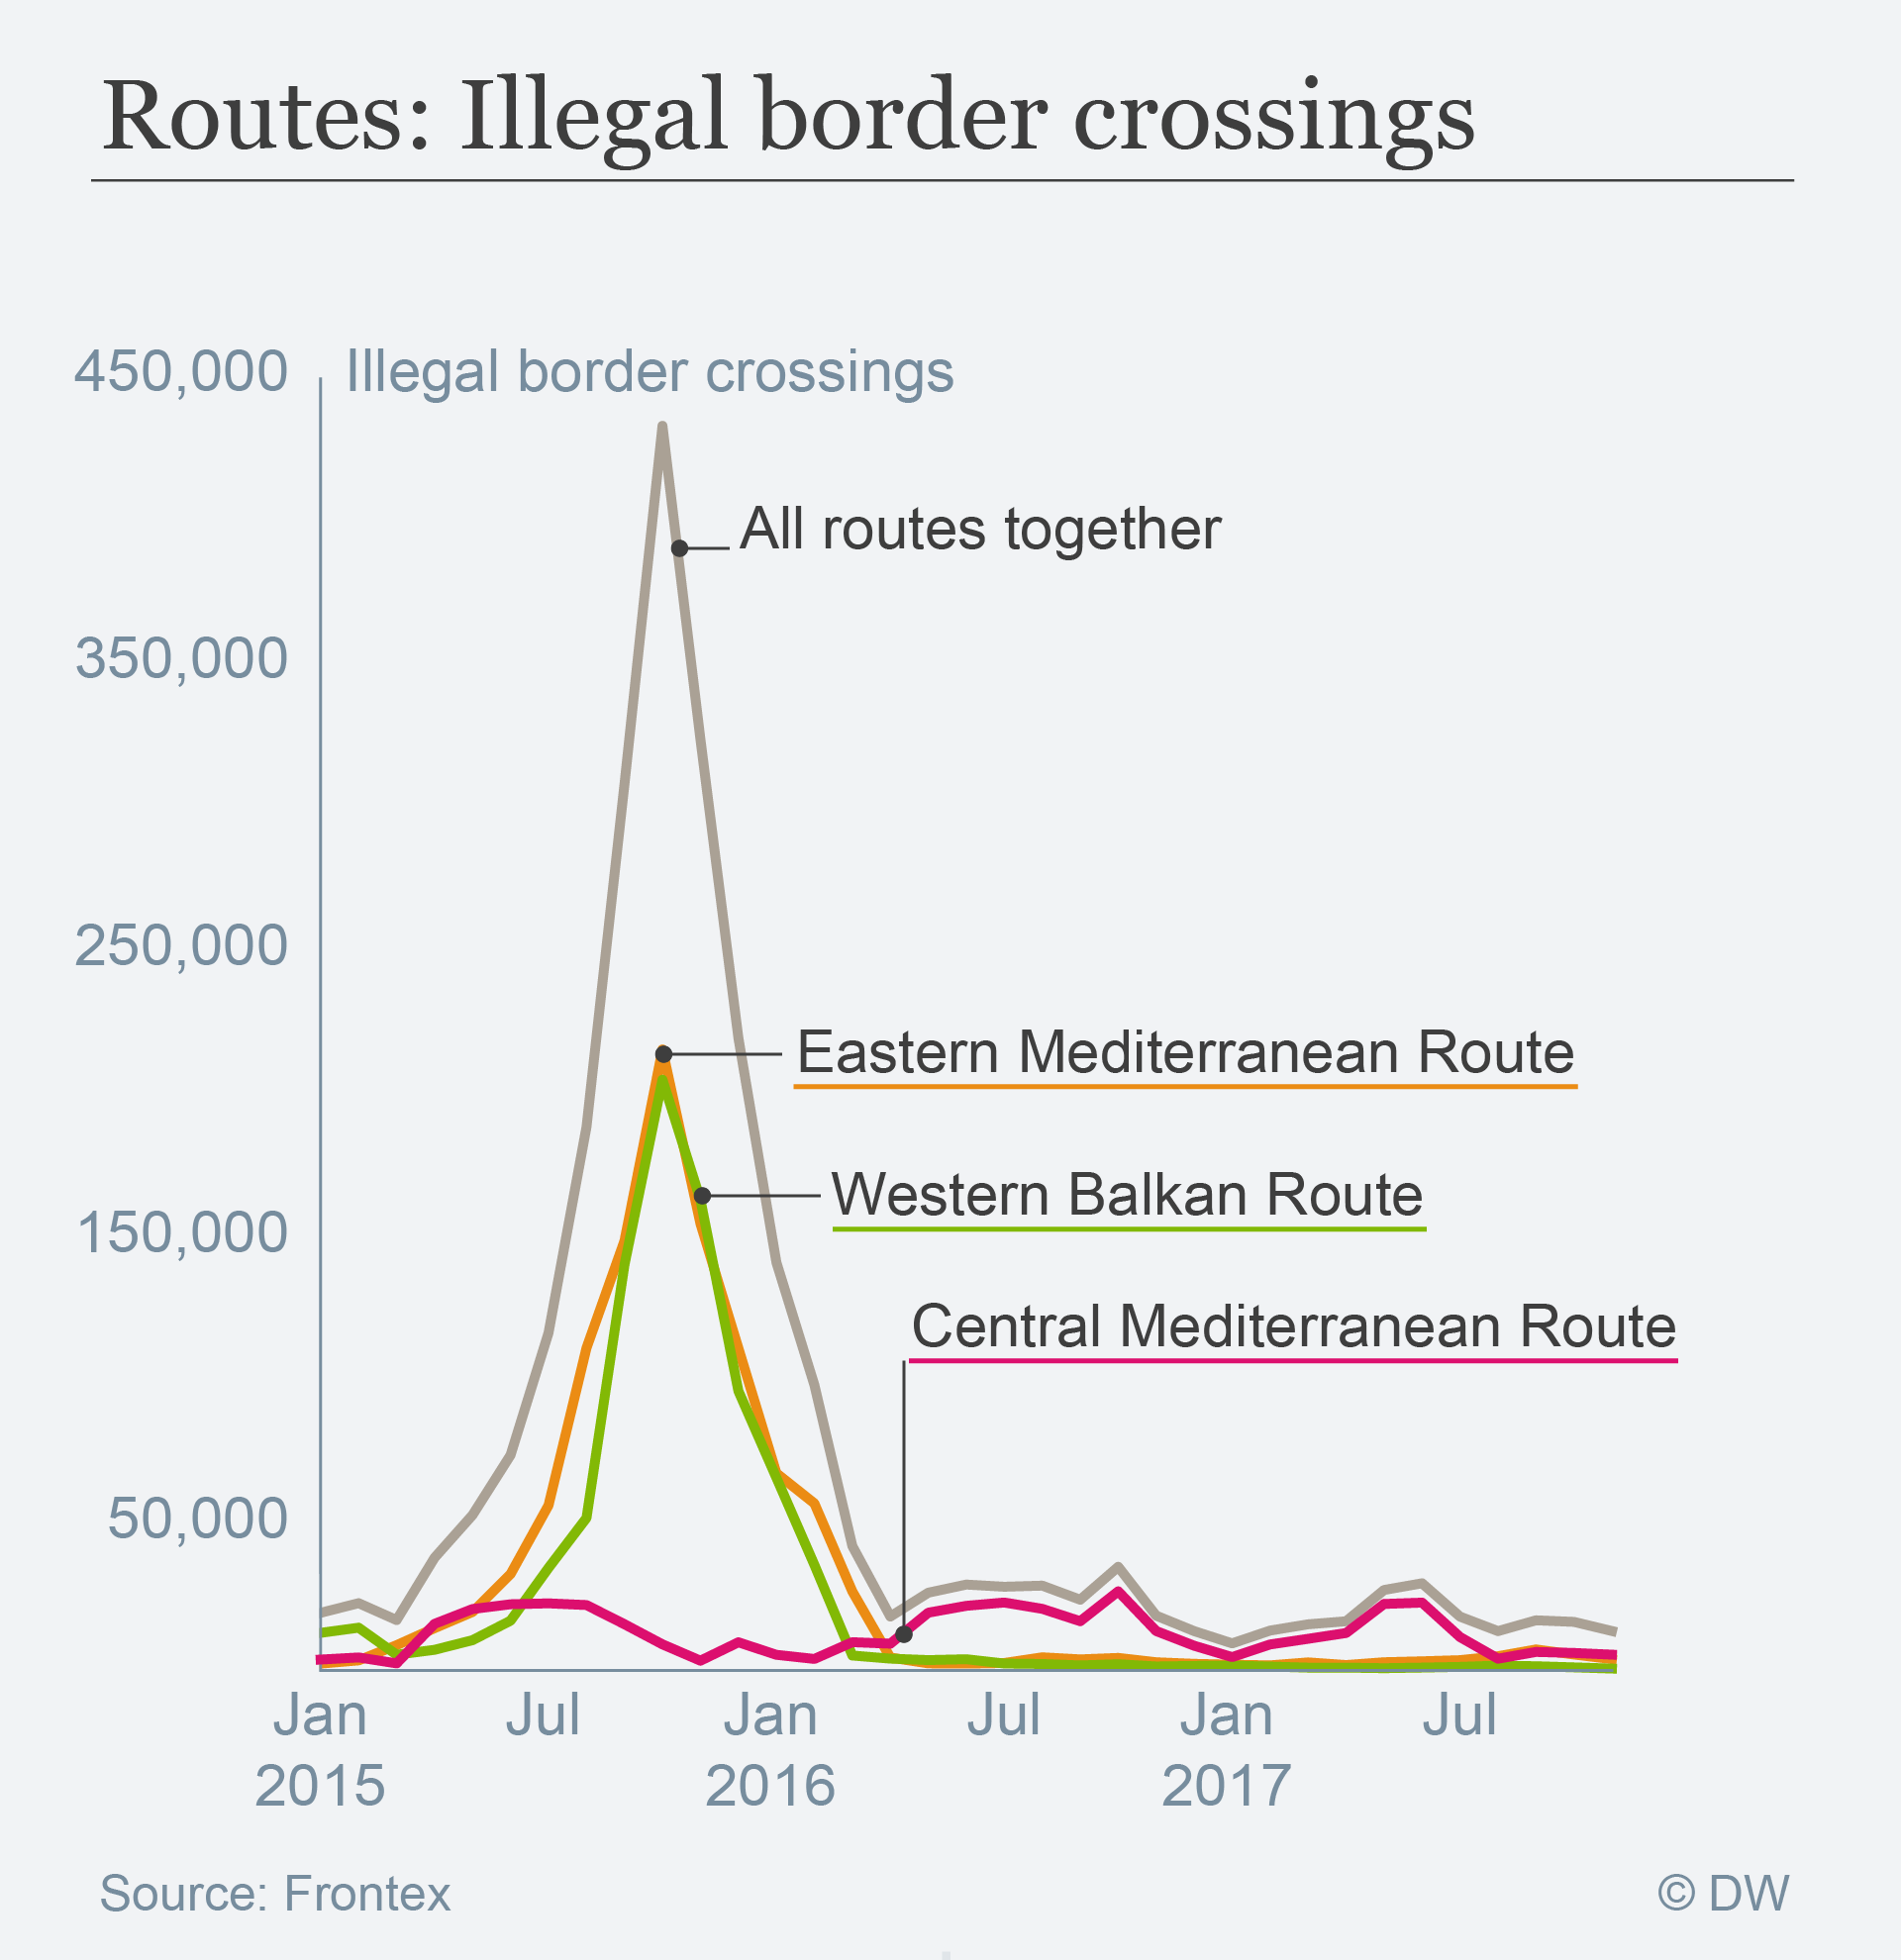 Data visualization: Illegal border crossings